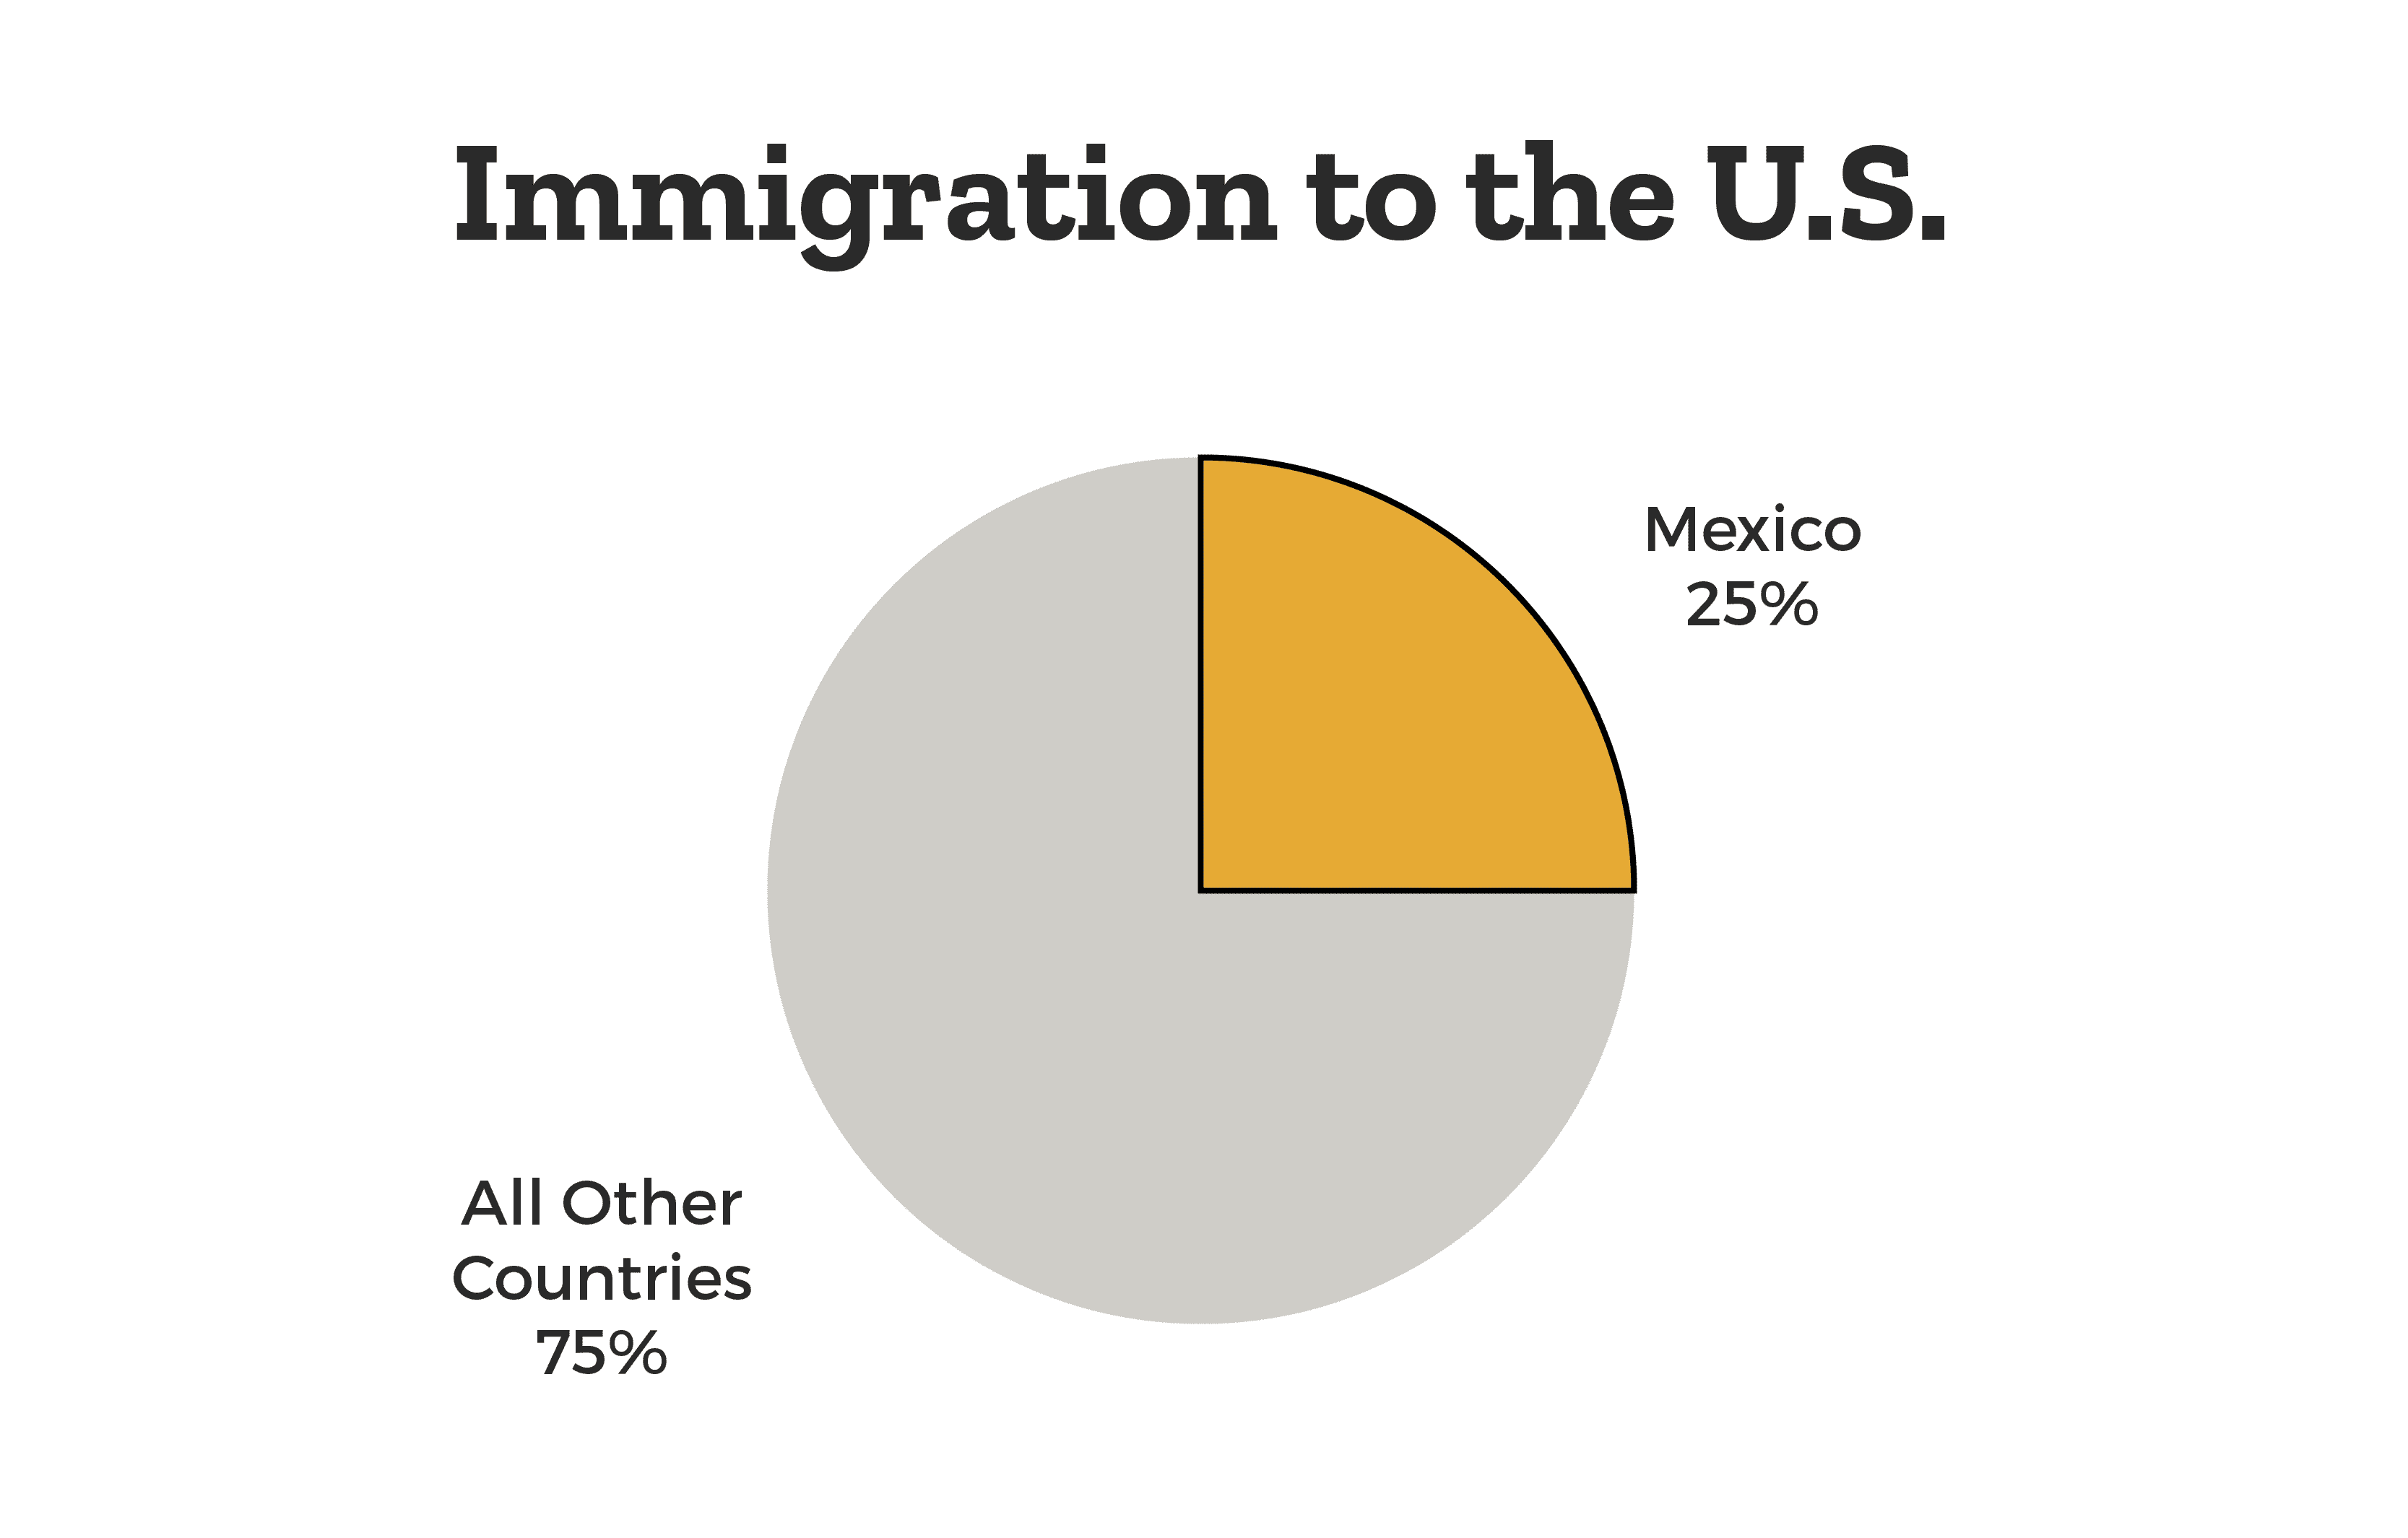 mexican-immigrants-25-percent-of-total-immigration